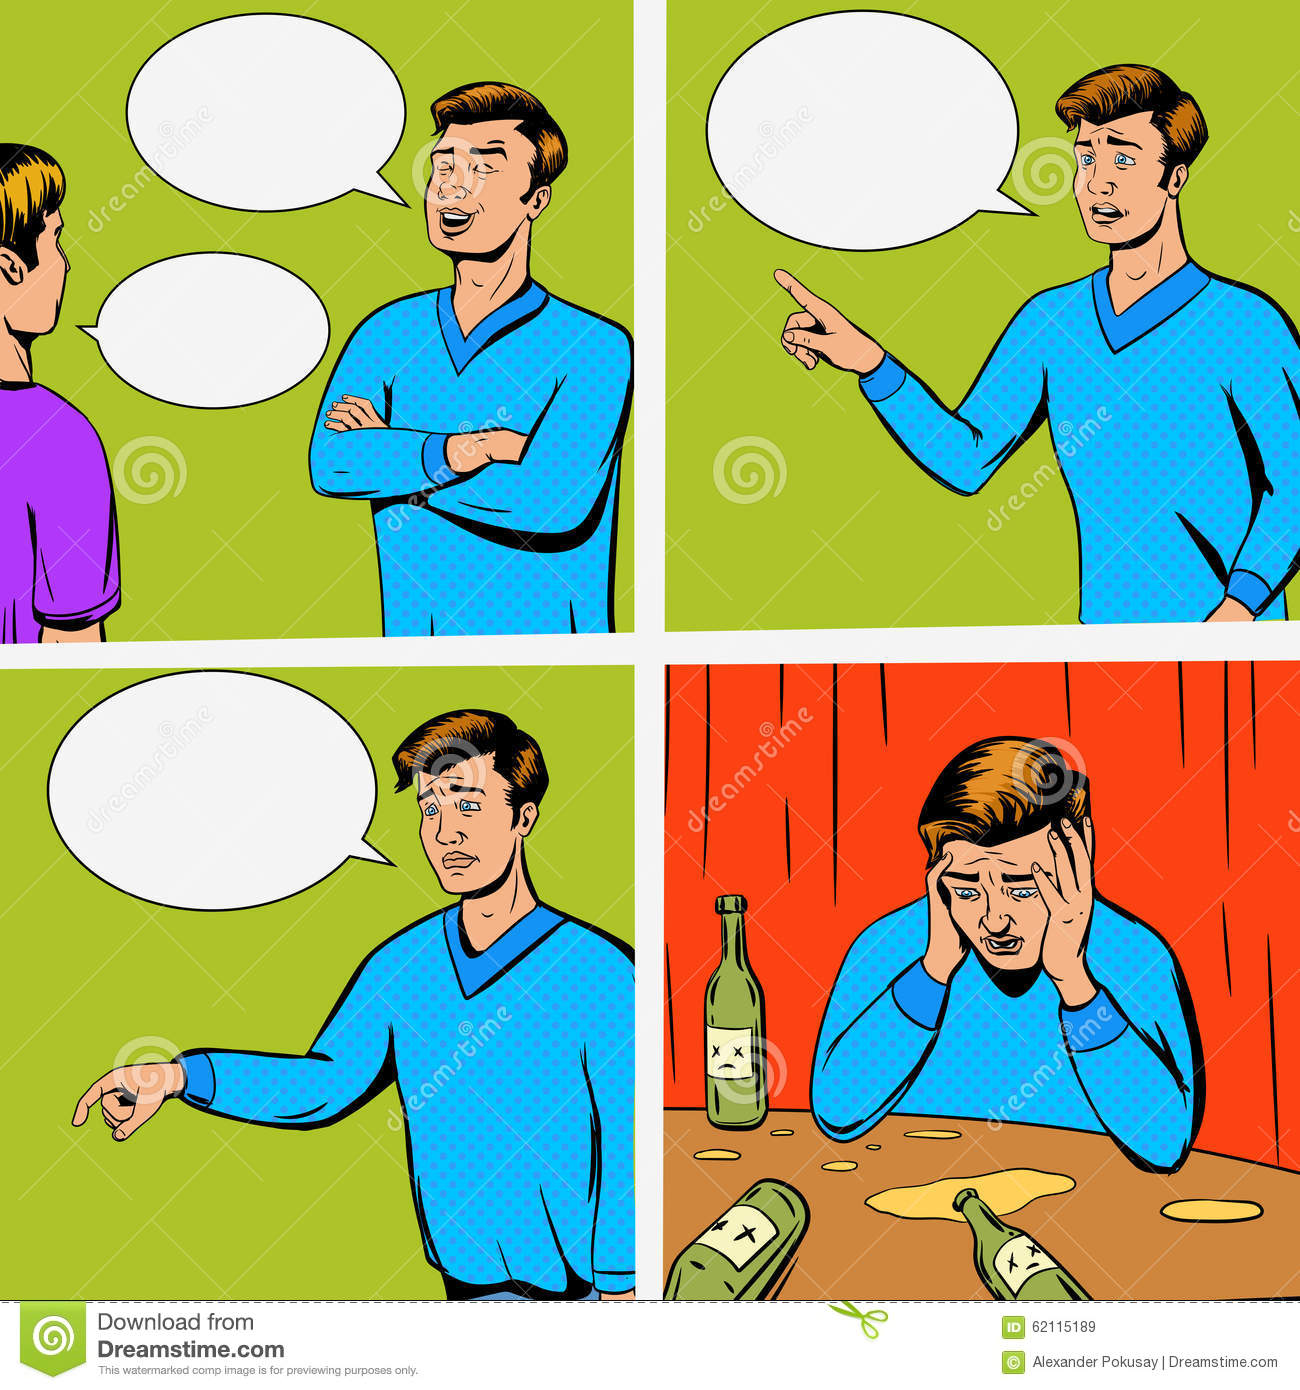 Comic Strip With Debate Of Two Persons Vector Stock Vector